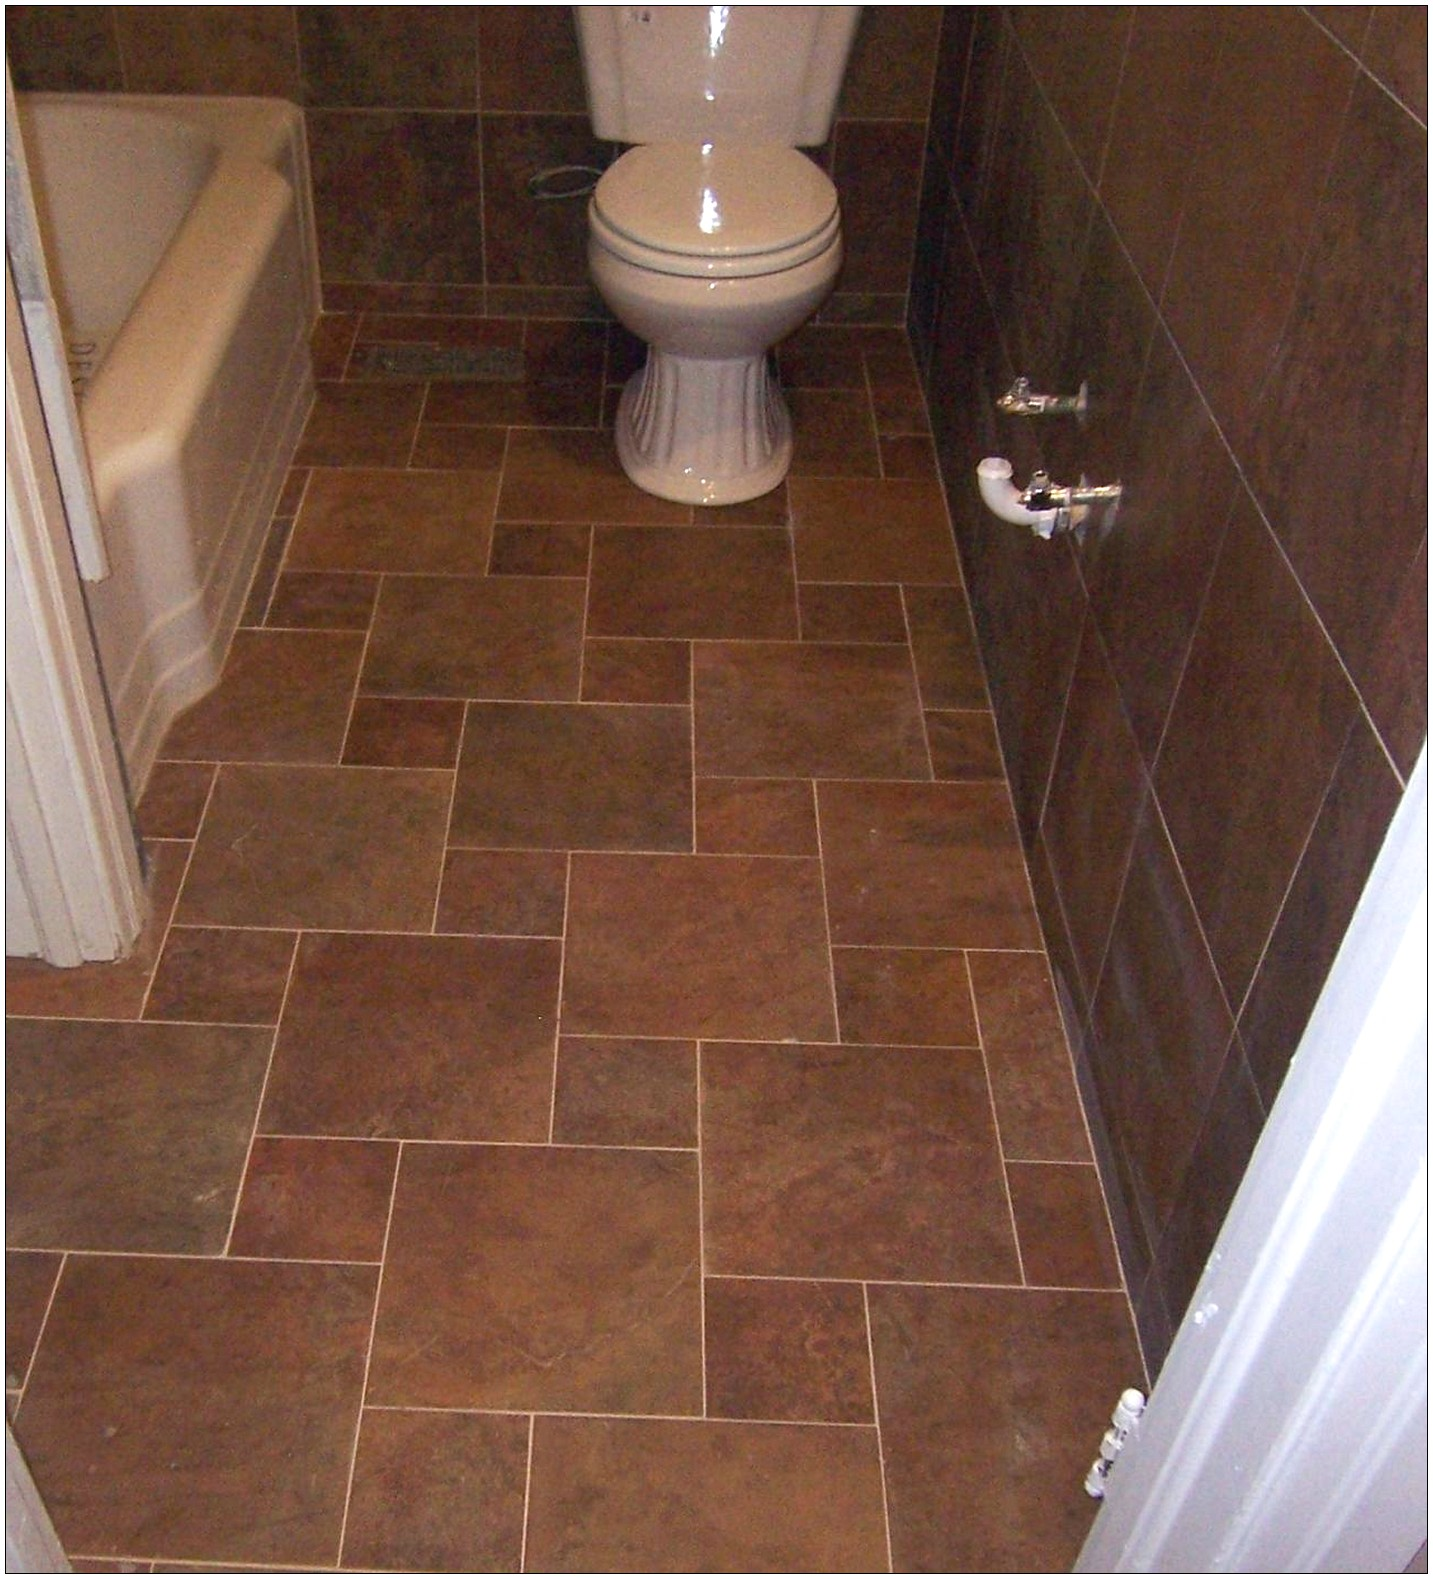 Floor Tile Design Ideas For Renovate Small Bathroom ~ Wonderful ideas and pictures of decorative bathroom